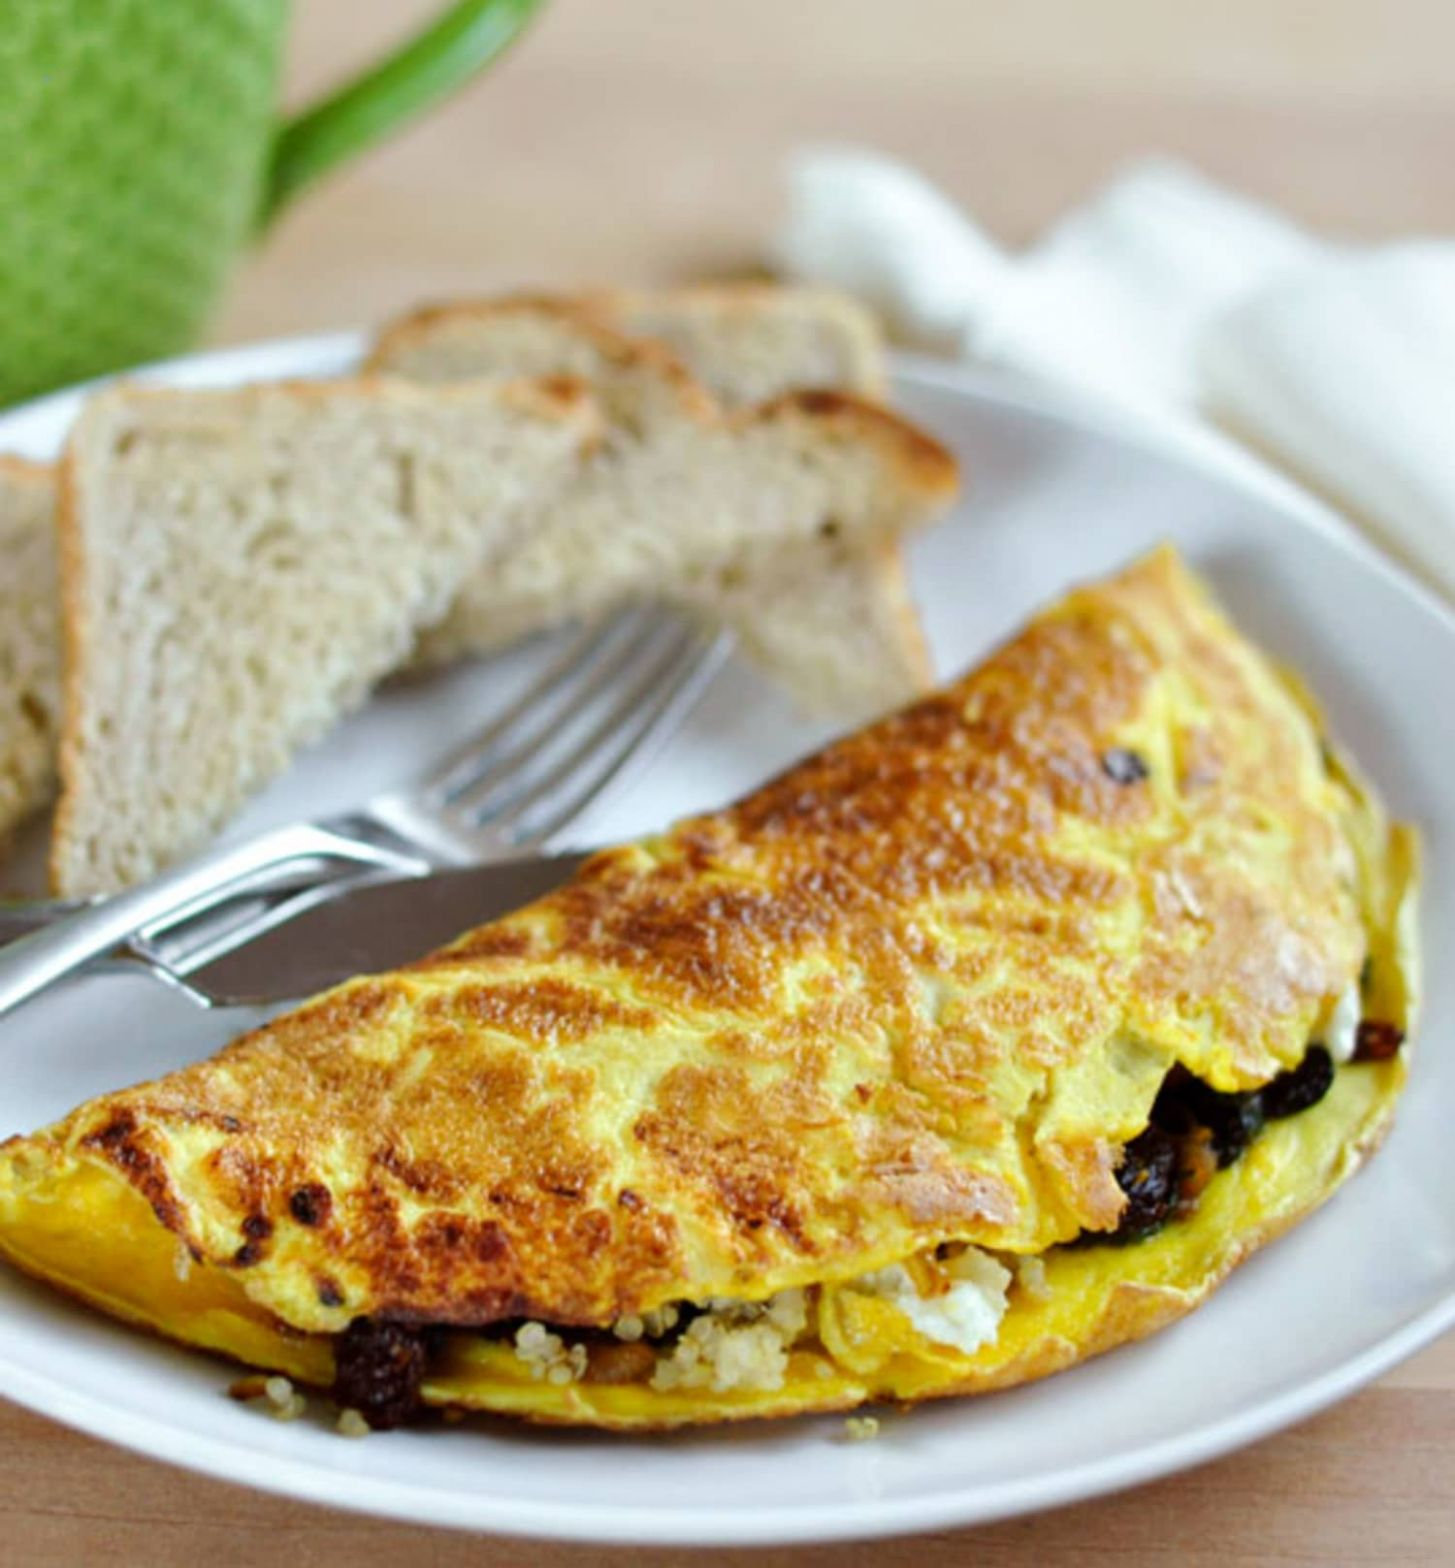 10-Egg Omelet with Quinoa, Sun-Dried Tomatoes, Spinach, and Goat Cheese - Egg Omelette Recipe